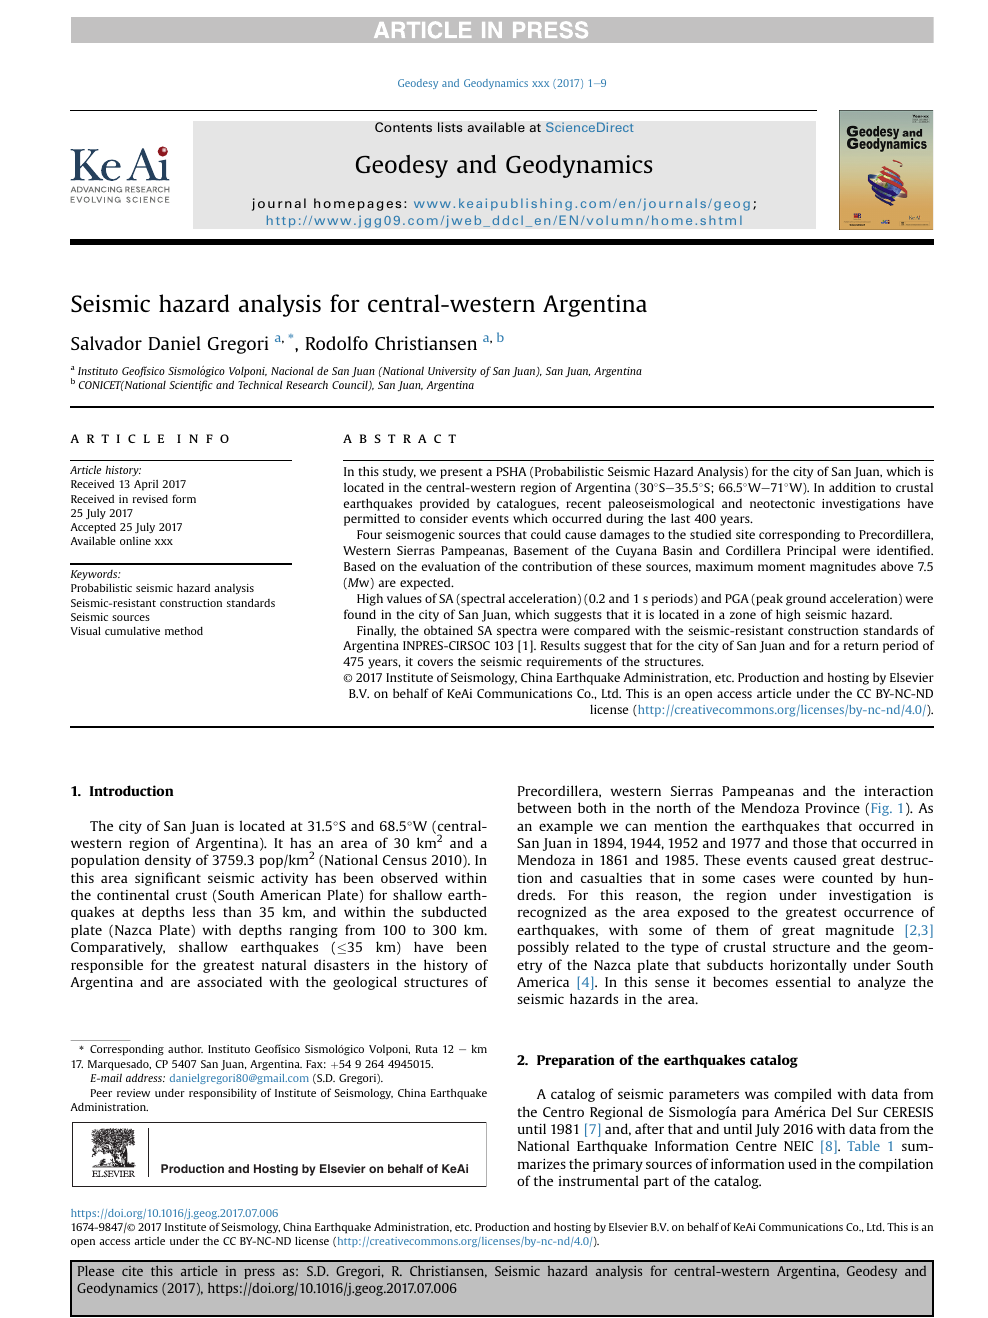 Seismic hazard analysis for central-western Argentina – topic of